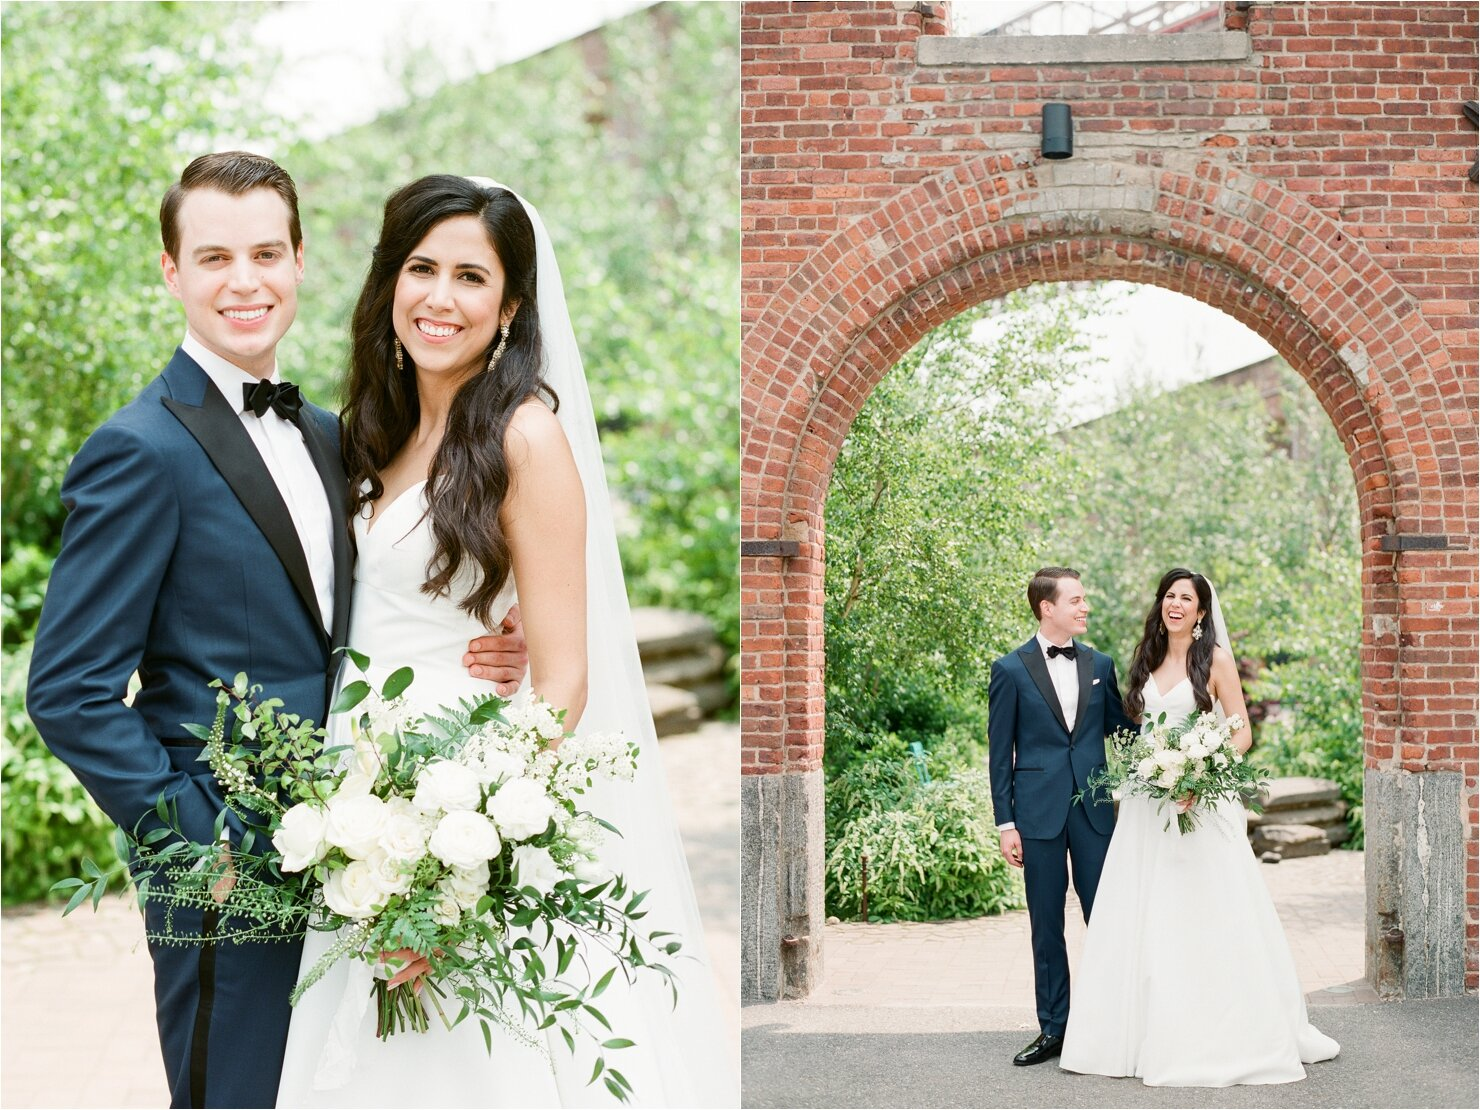 St. Anne's Warehouse Bride and Groom Photos